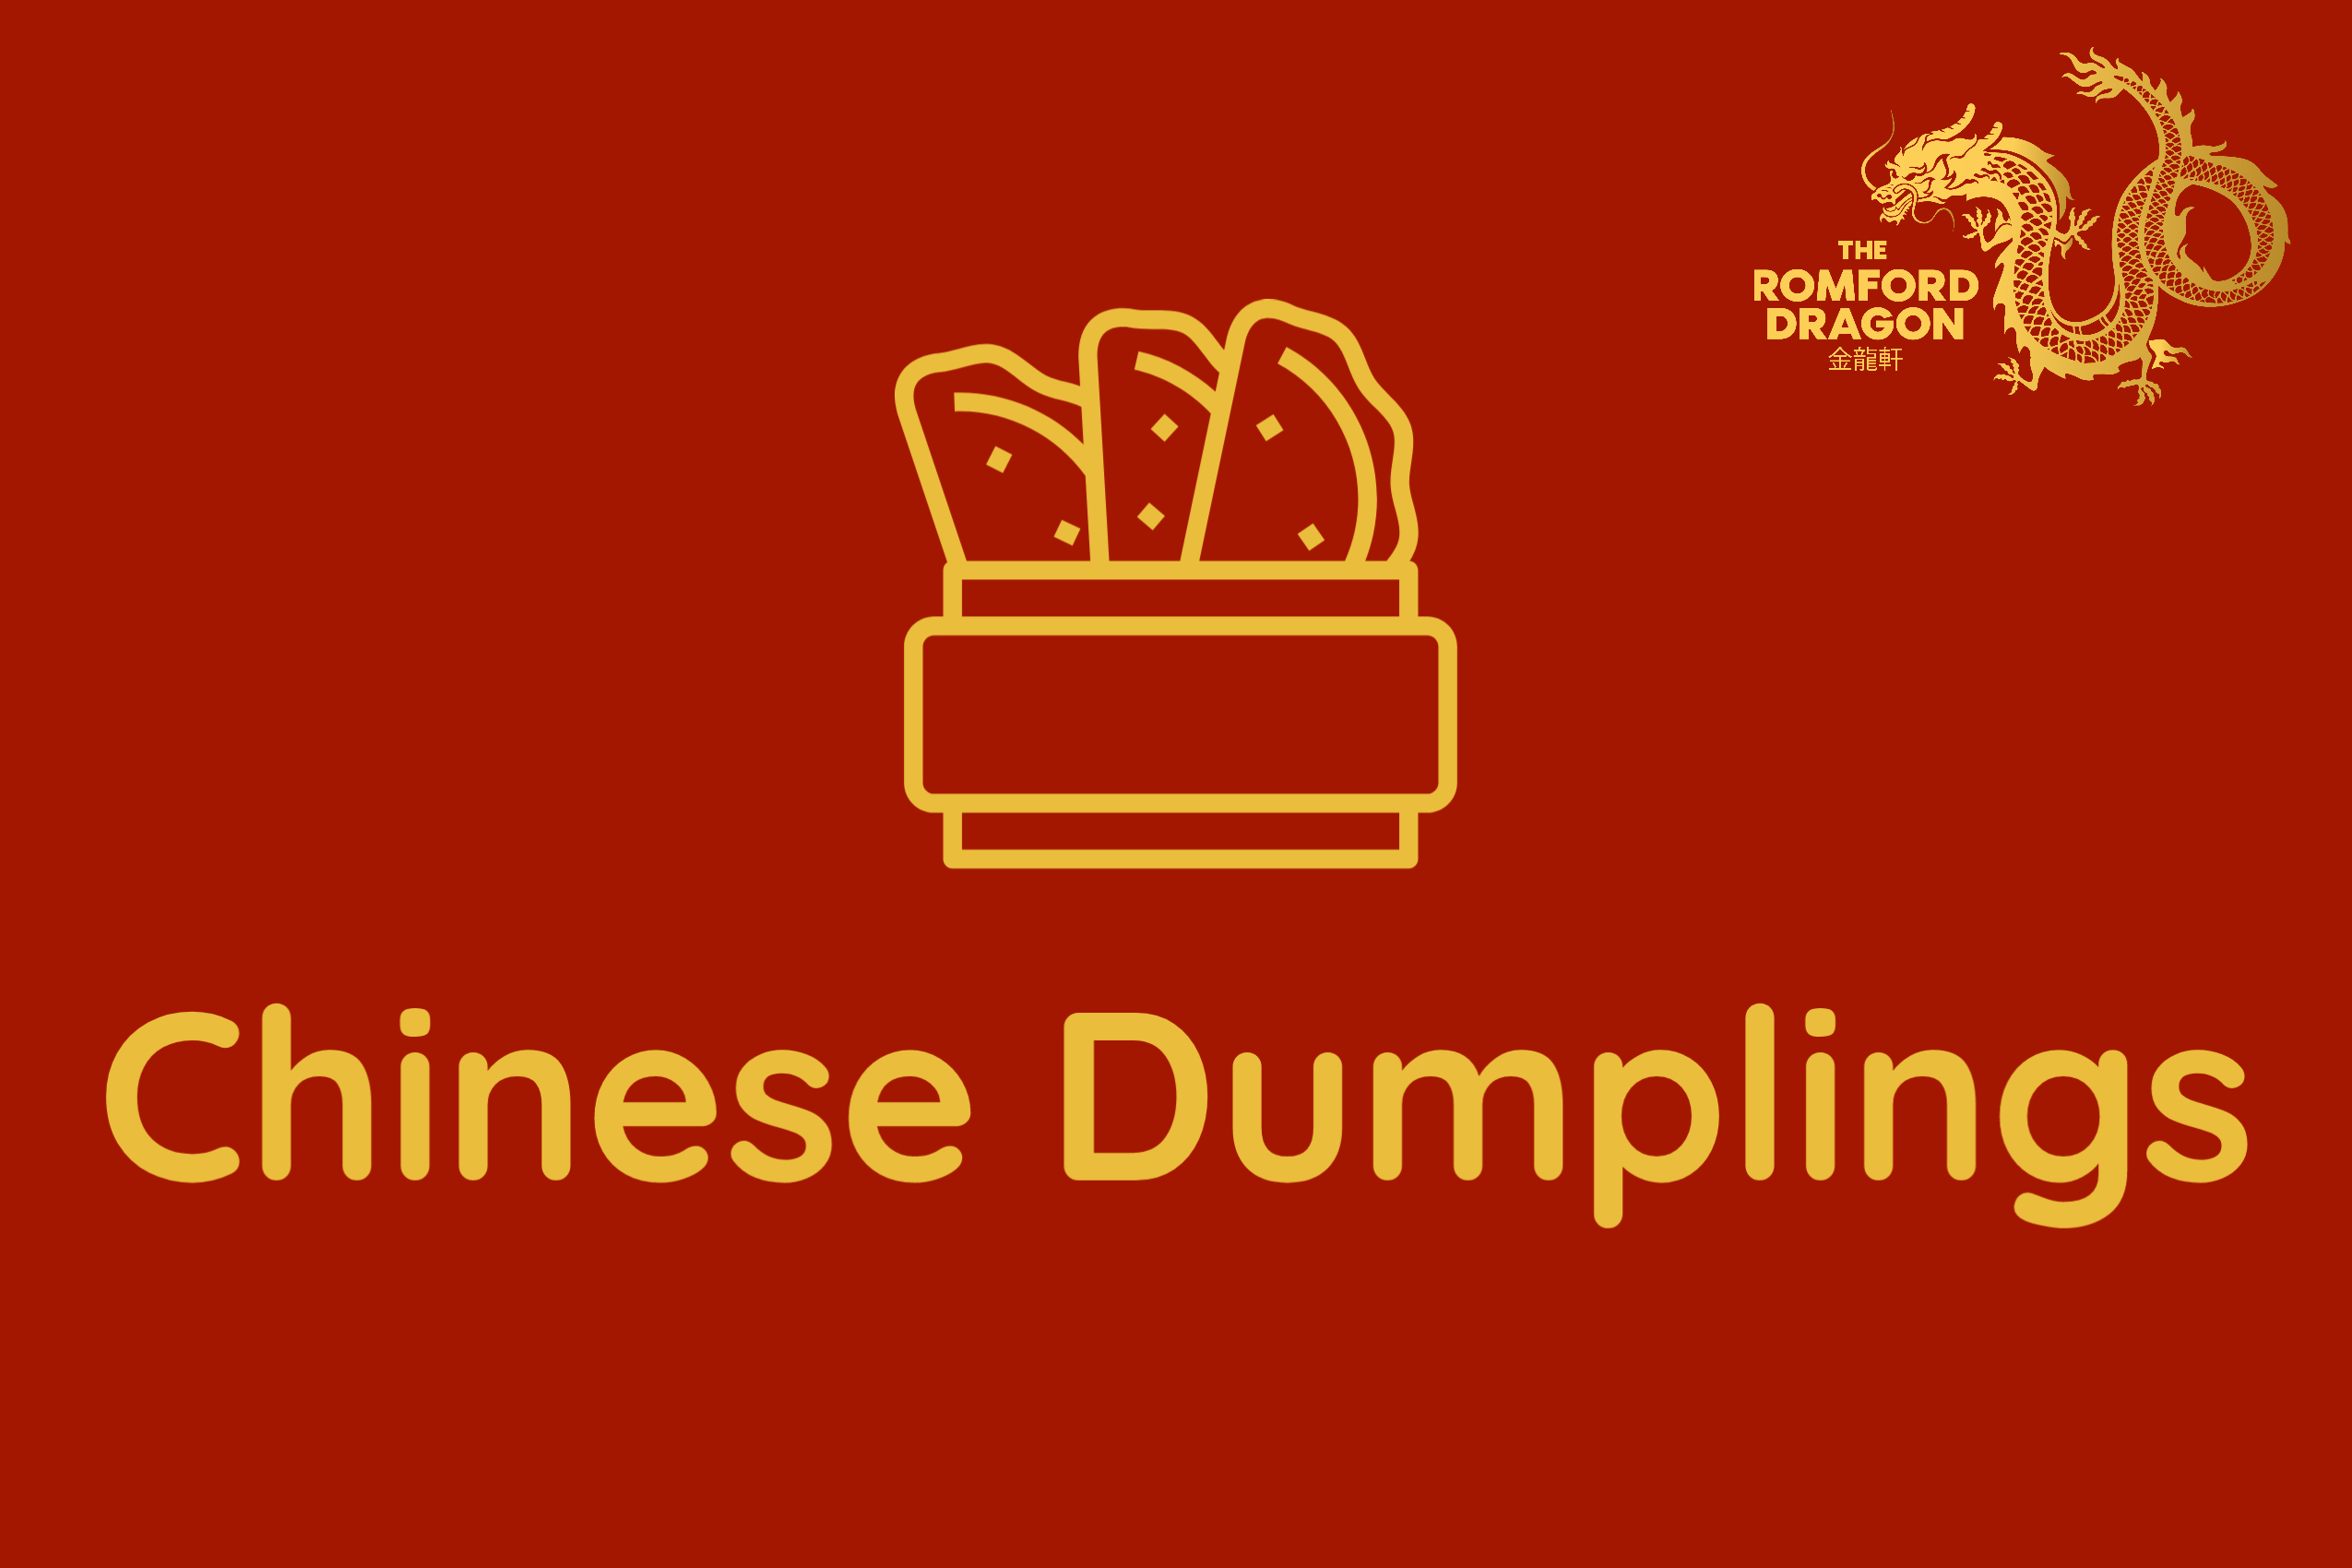 A golden dumpling icon is on a red background. on the top right is the Romford Dragon logo. Under the dumpling are golden texts: Chinese Dumplings